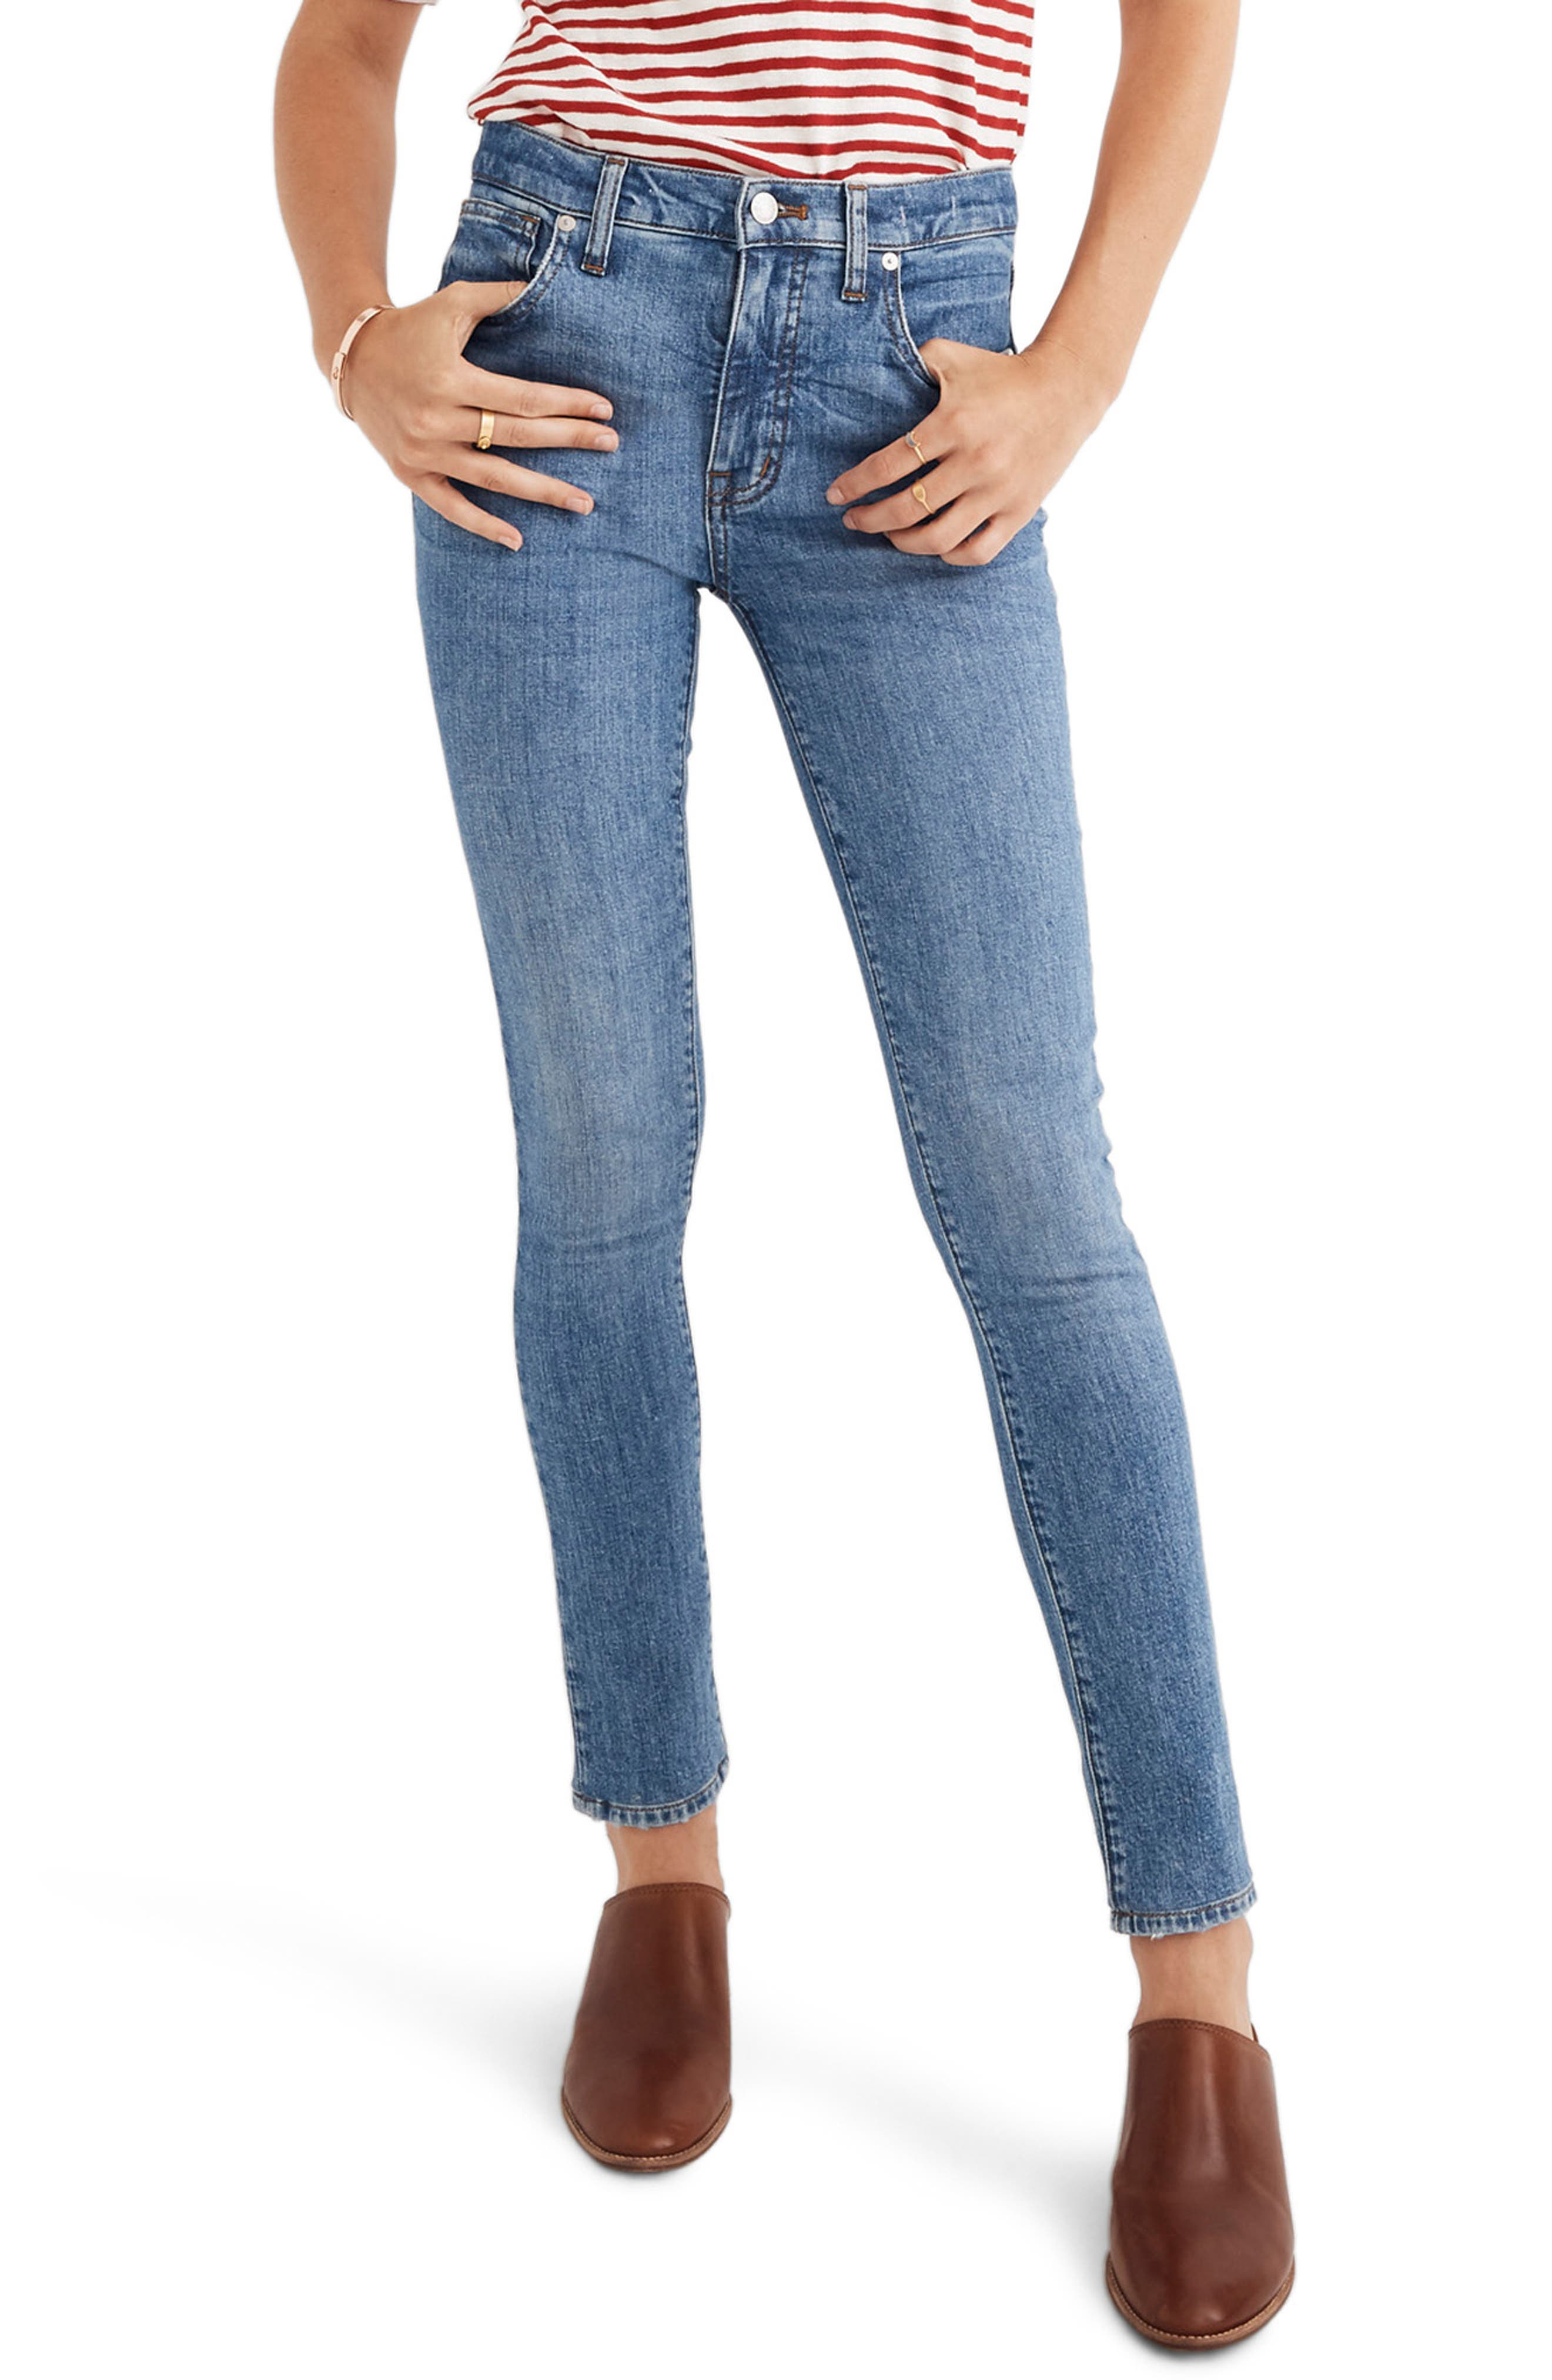 9-Inch High Waist Stretch Skinny Jeans,                             Main thumbnail 1, color,                             REGINA